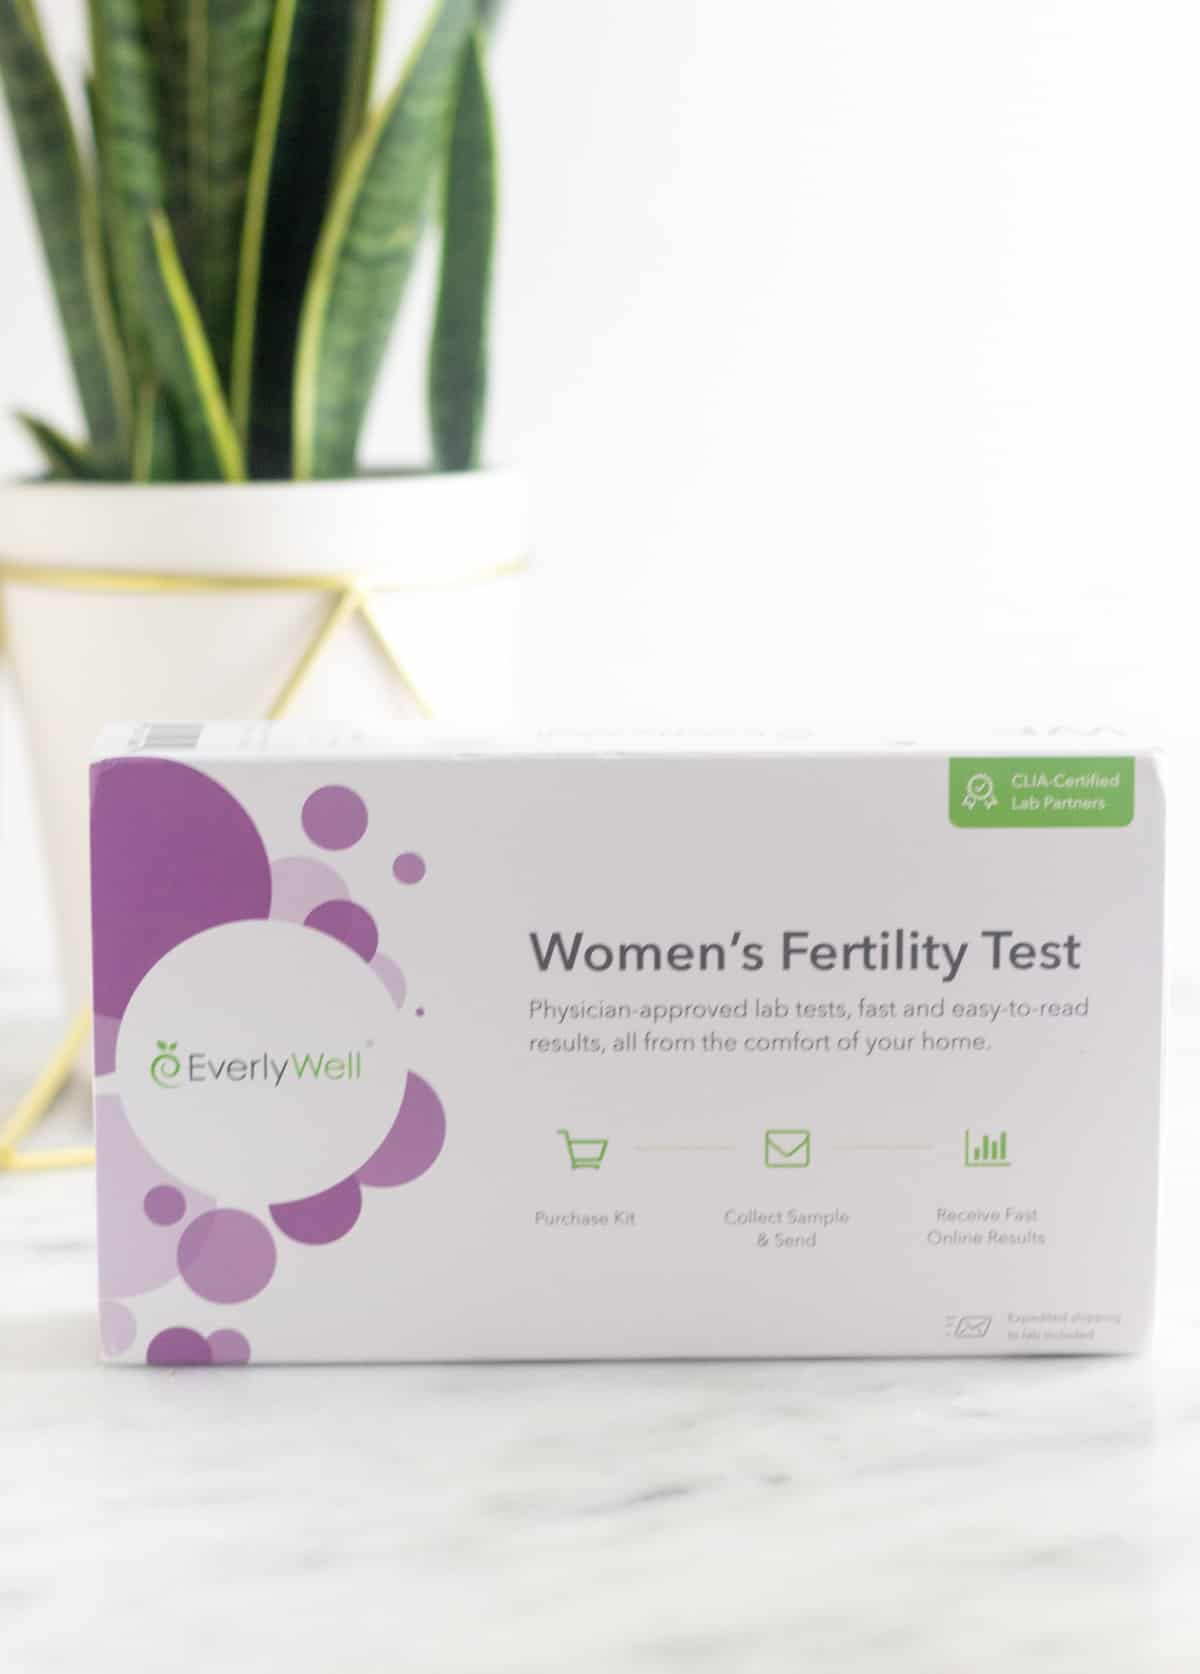 Women's Fertility Testing at Home with EverlyWell box with a plant behind it